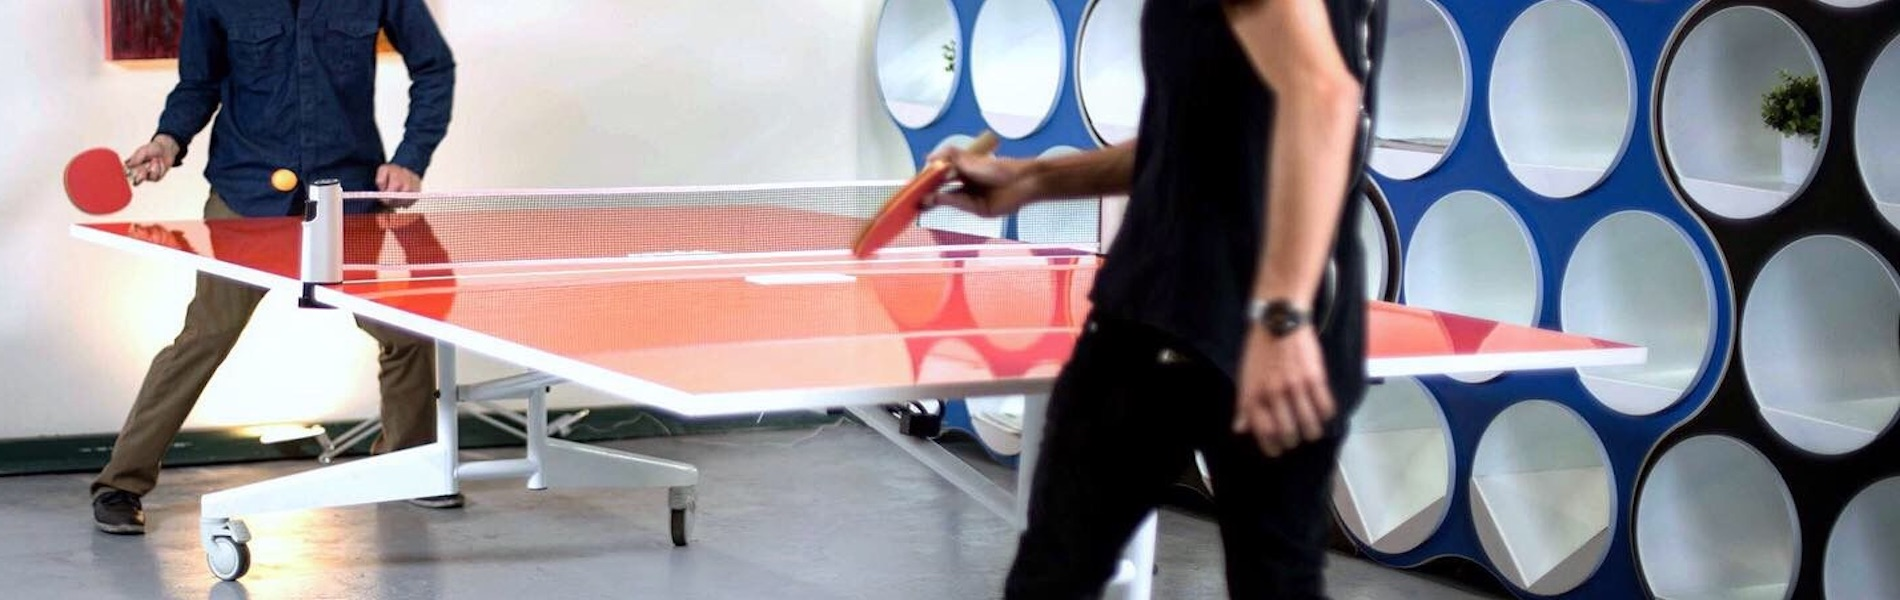 Multi-Function Ping Pong Tables